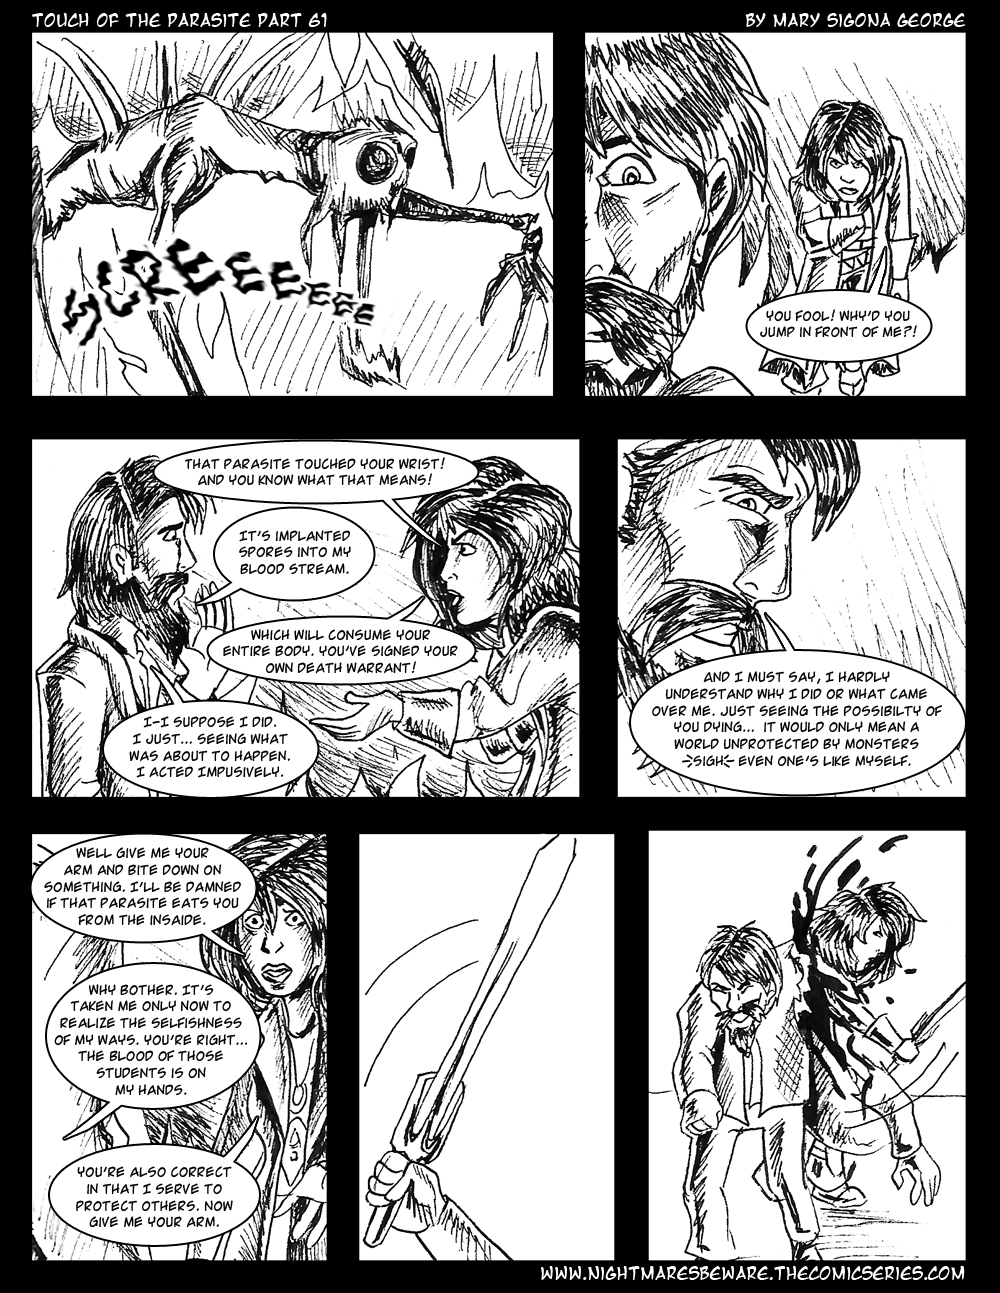 Touch of the Parasite: Part 61